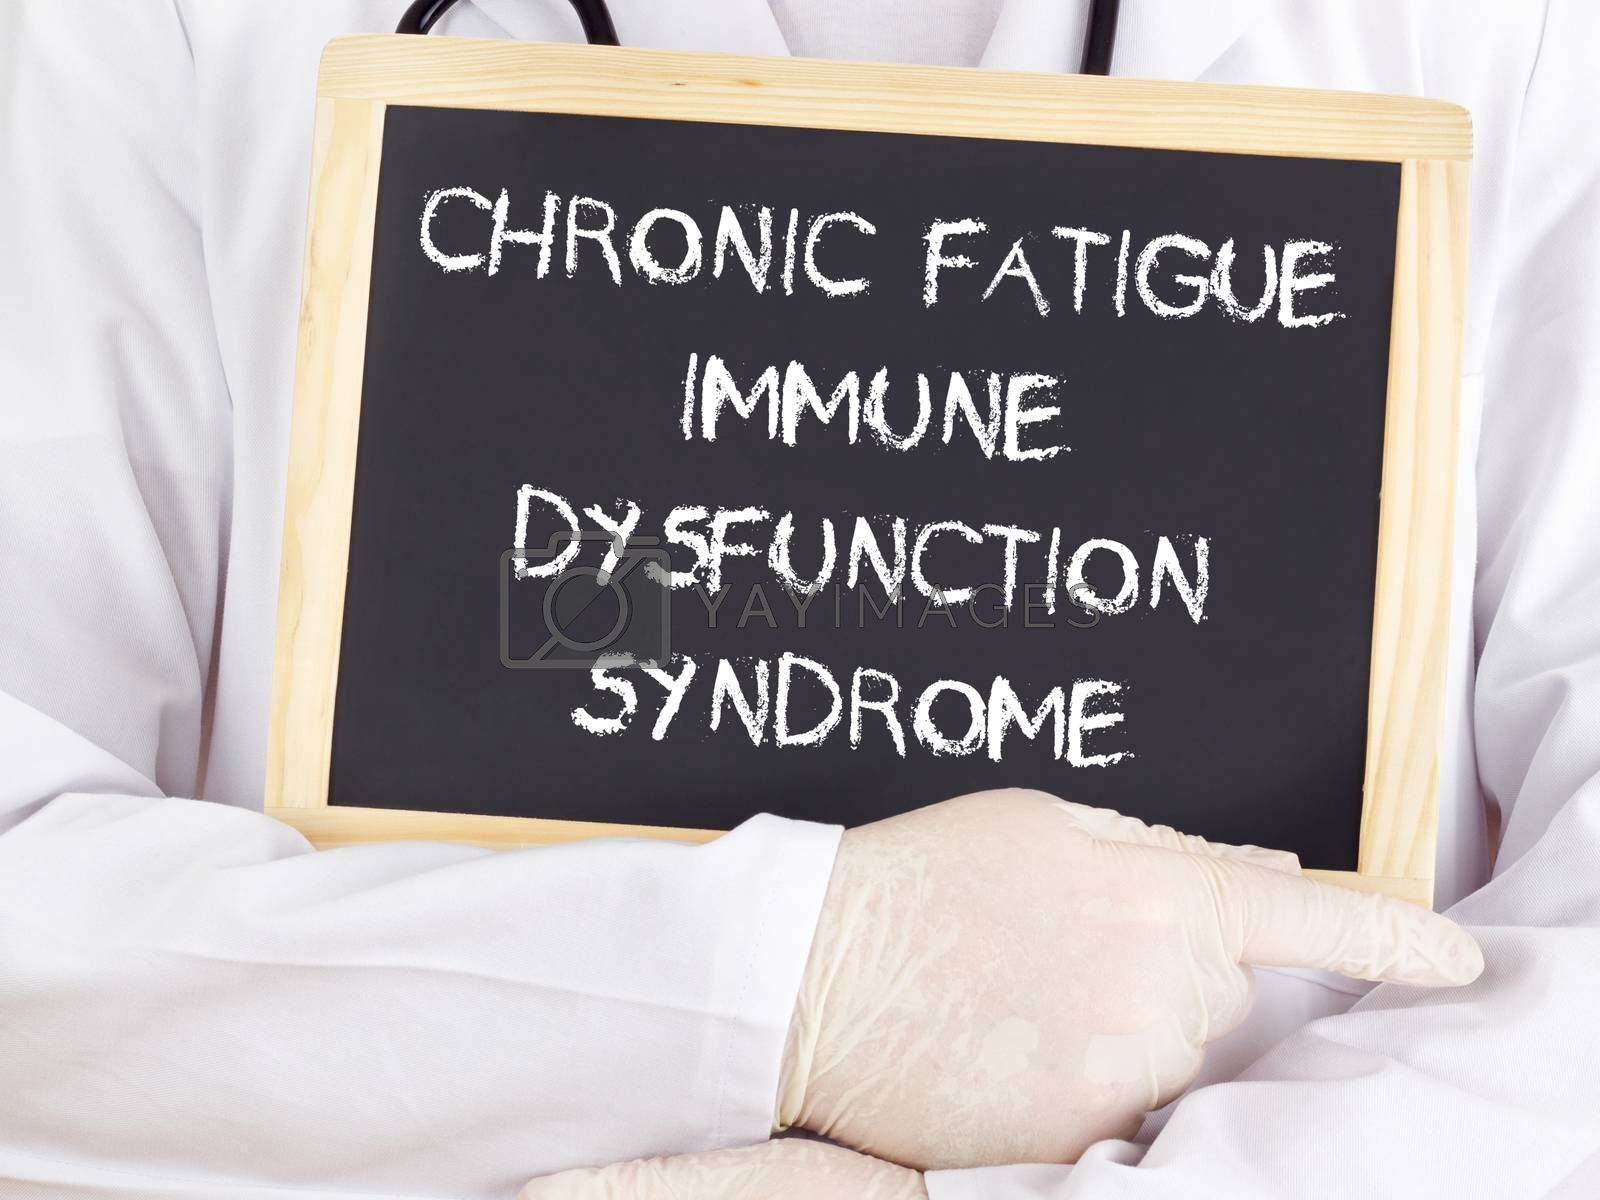 Royalty free image of Doctor shows information: chronic fatigue syndrome immune dysfunction syndrome by gwolters